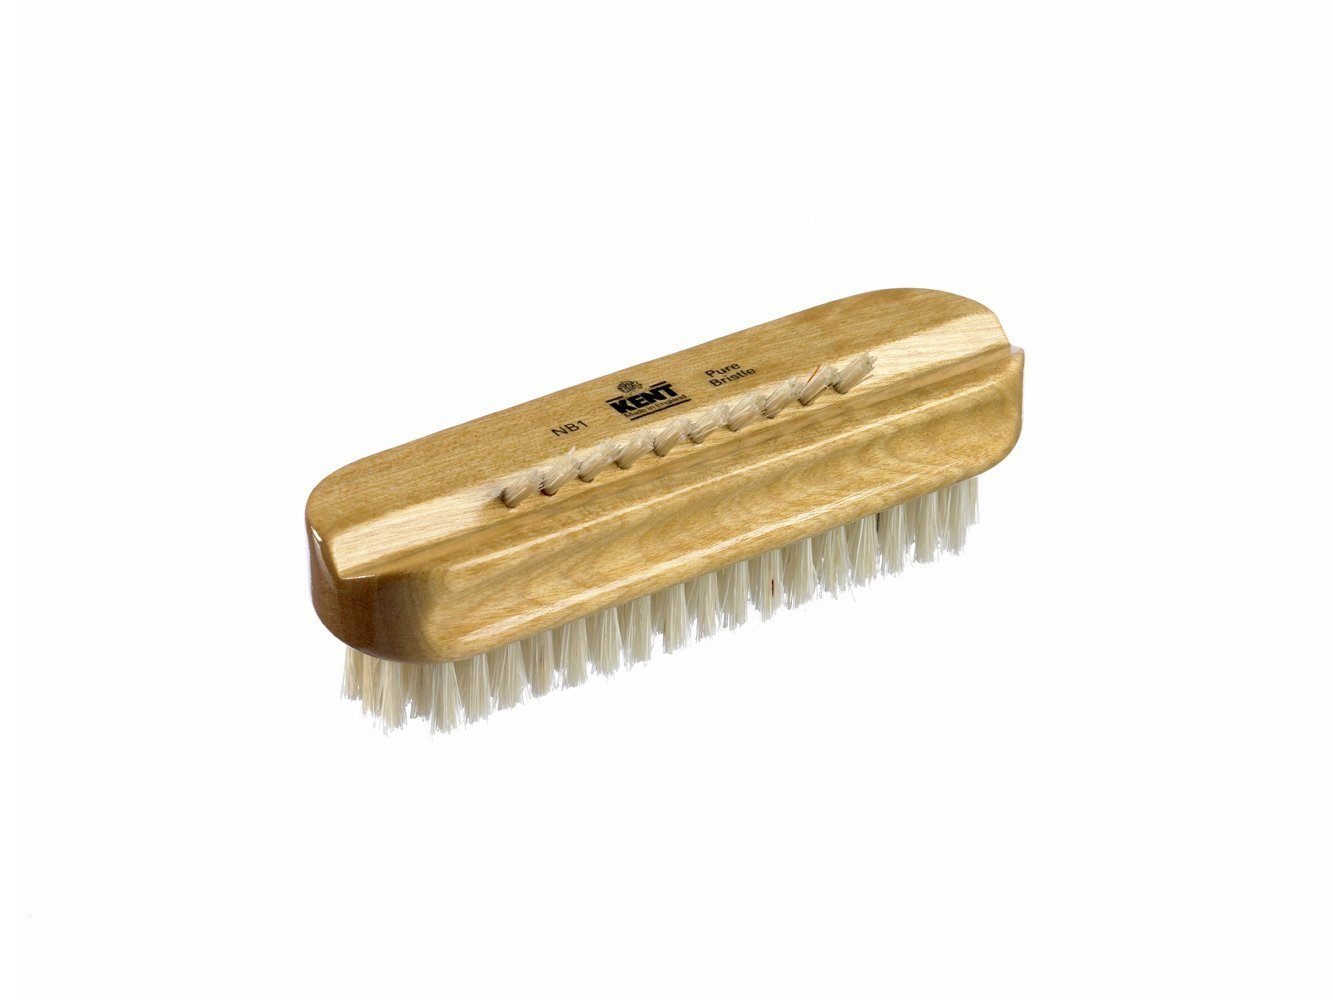 Kent Satin Wood White Bristle Manicure Pedicure Cleaning Scrubbing Nail Brush | EBay